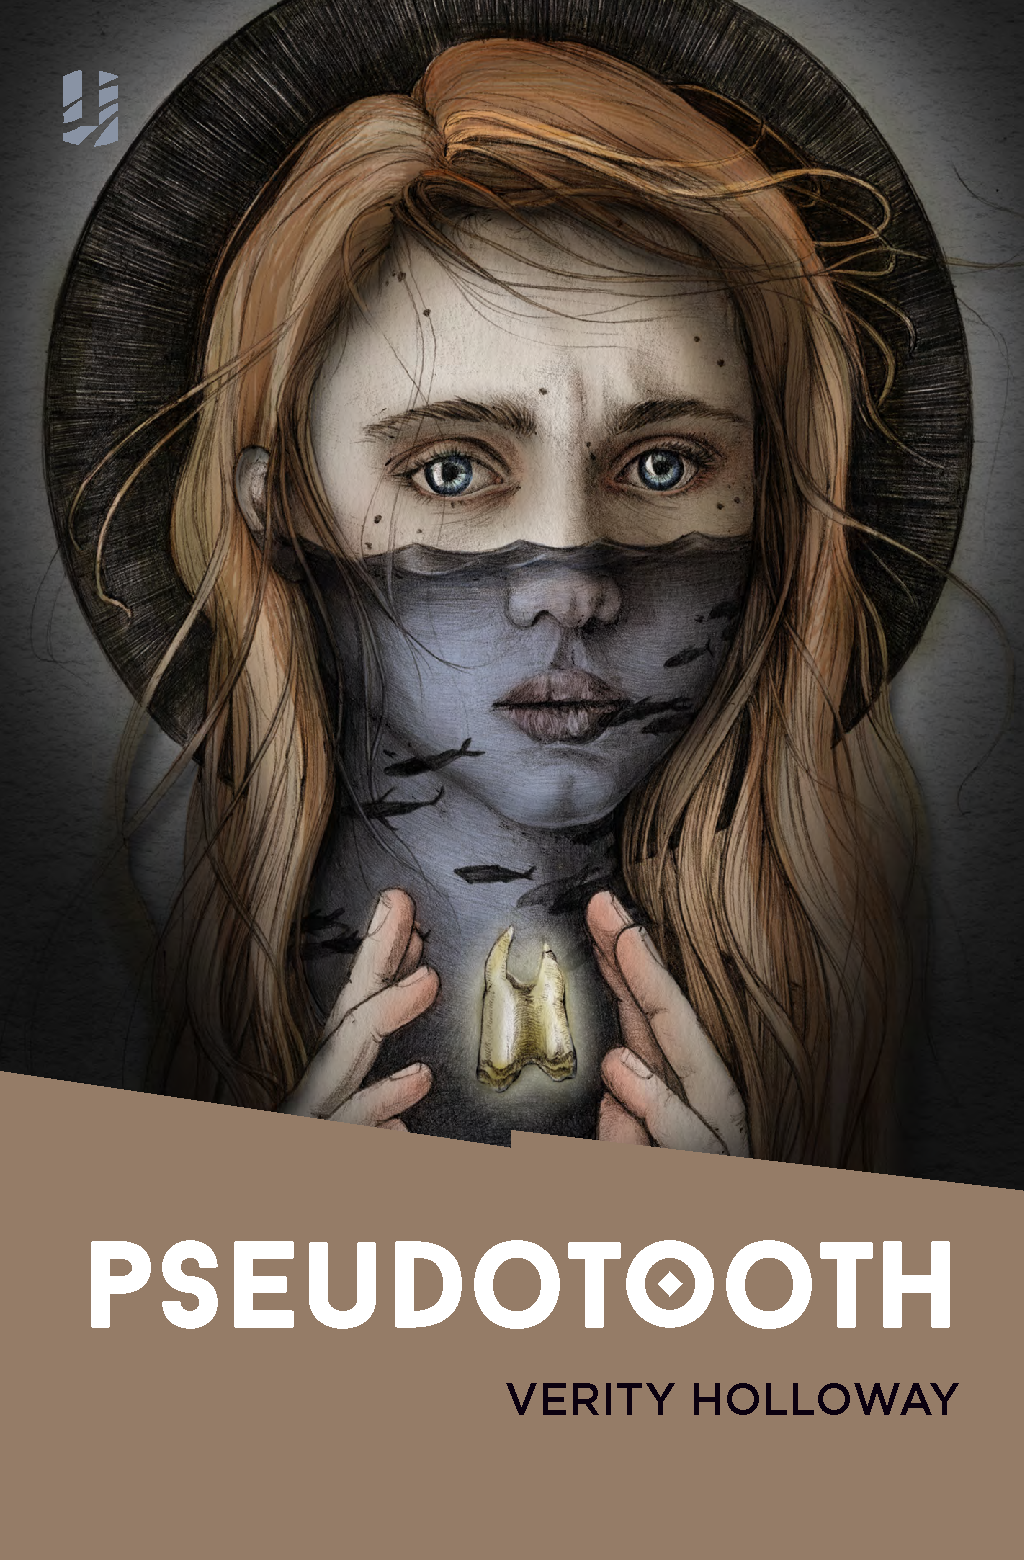 us_ Pseudotooth-COVER1_110816